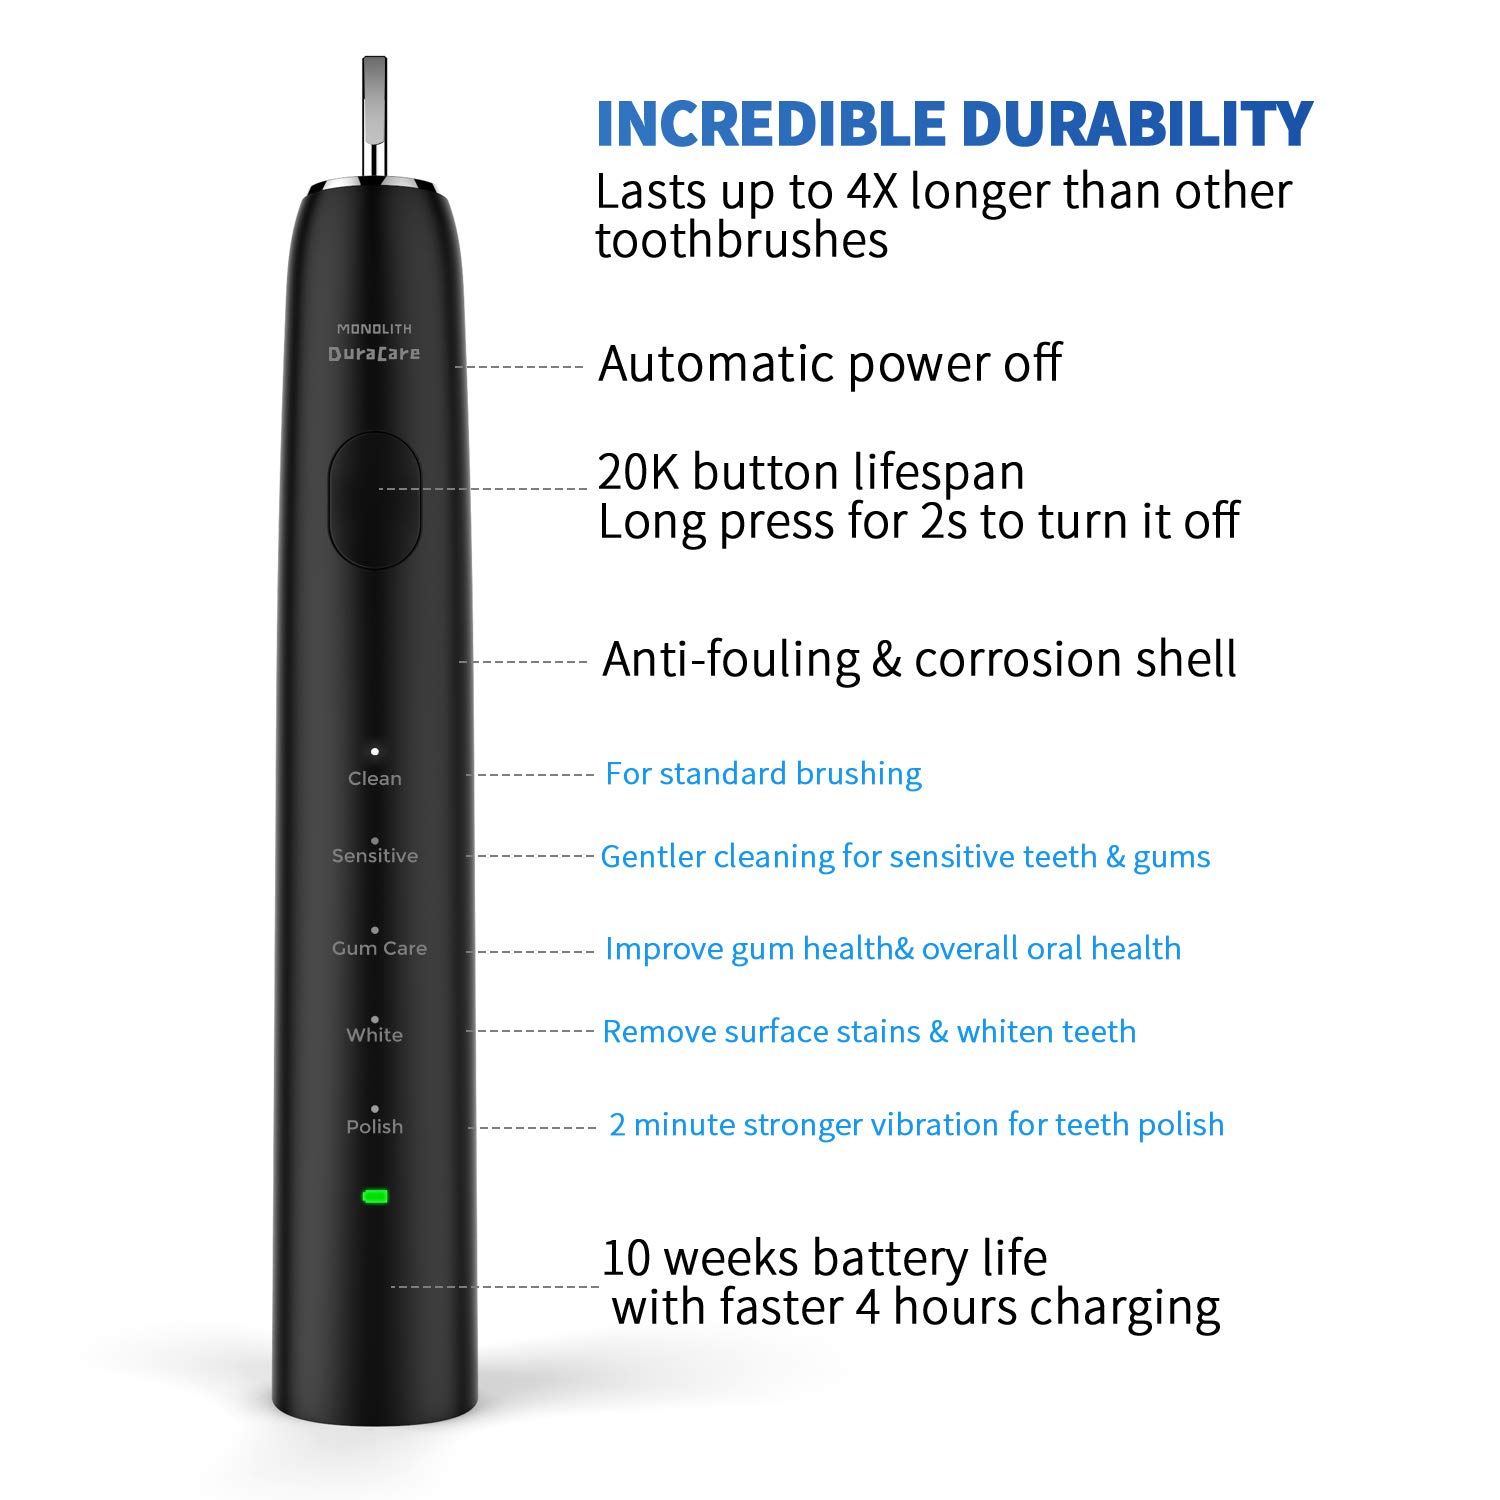 Deep Clean Power Sonic Toothbrush for Whitening Teeth, DuraCare Rechargeable 5 Smart Brushing Modes Electric Brush, Ultra Quiet Holds a Charge for Minimum 10 Weeks, Portable Perfect for Travel, Black